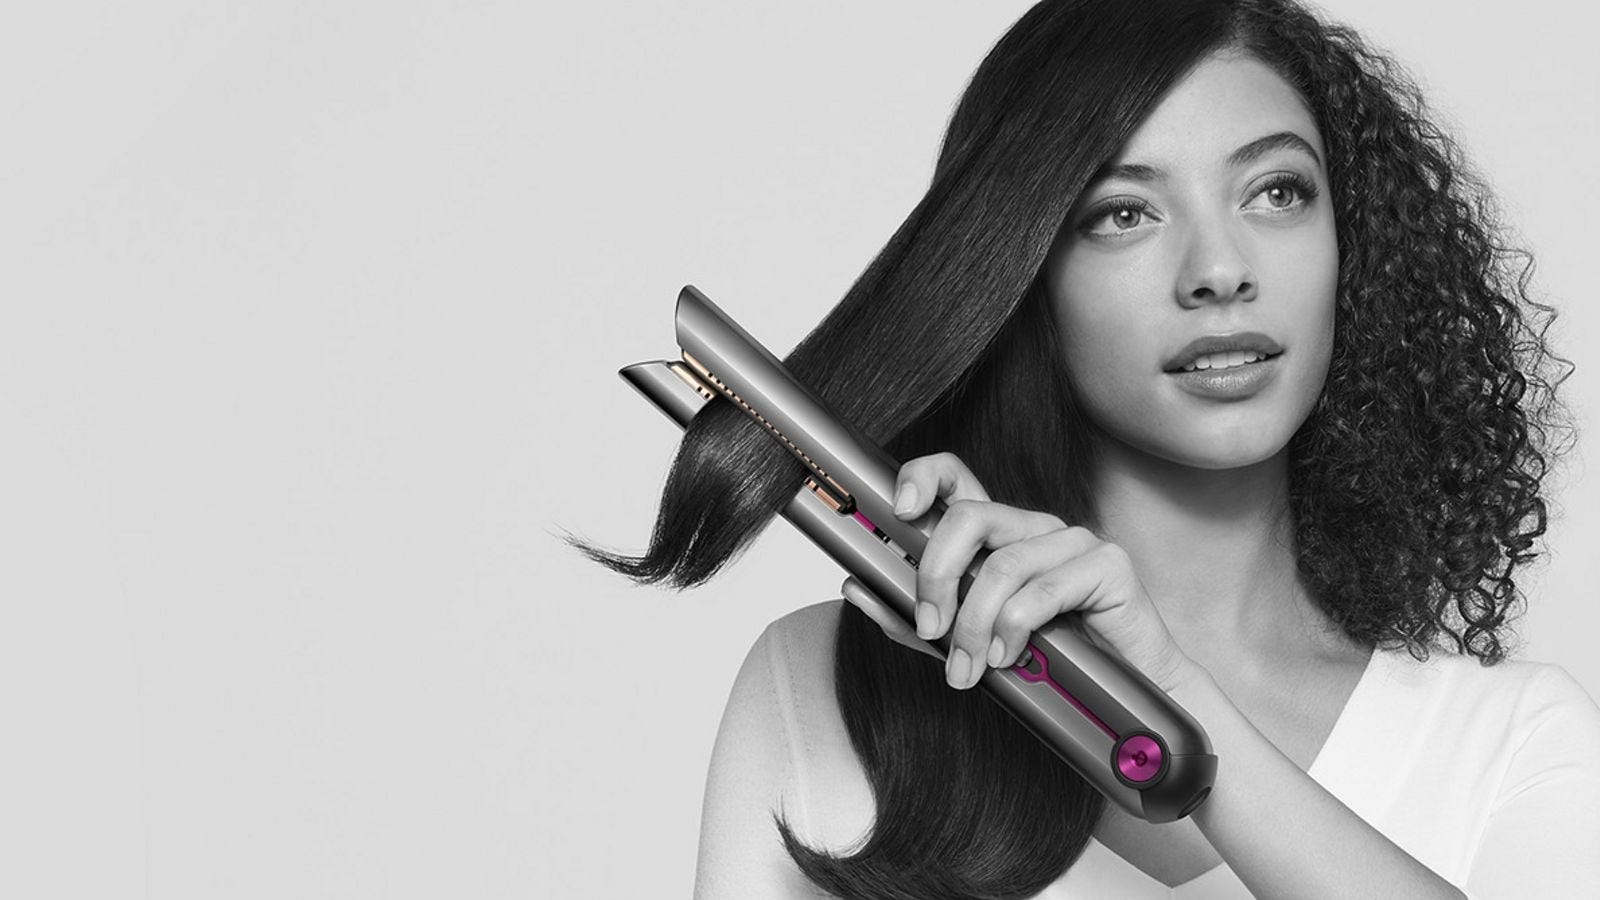 A woman using the Dyson Coralle hair straightener on one side, with curly hair on the other